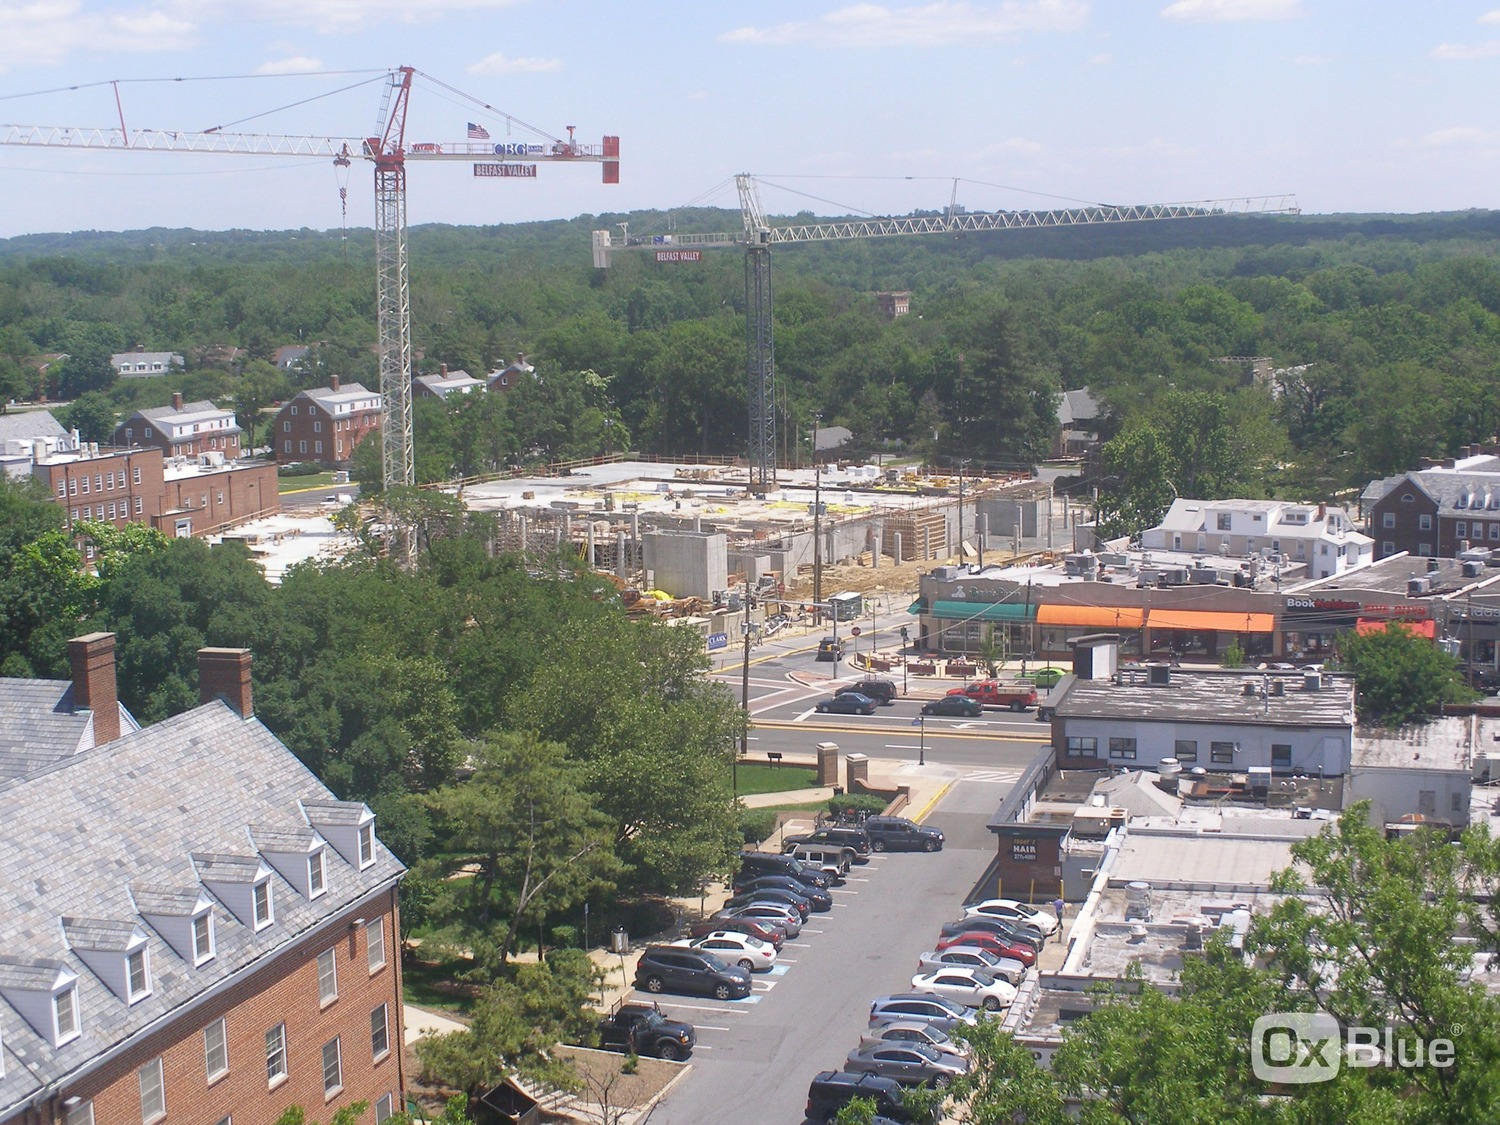 CBG builds Landmark College Park, a 283-Unit, 843-Bed Student Housing Community with Retail in College Park, MD - Image #5